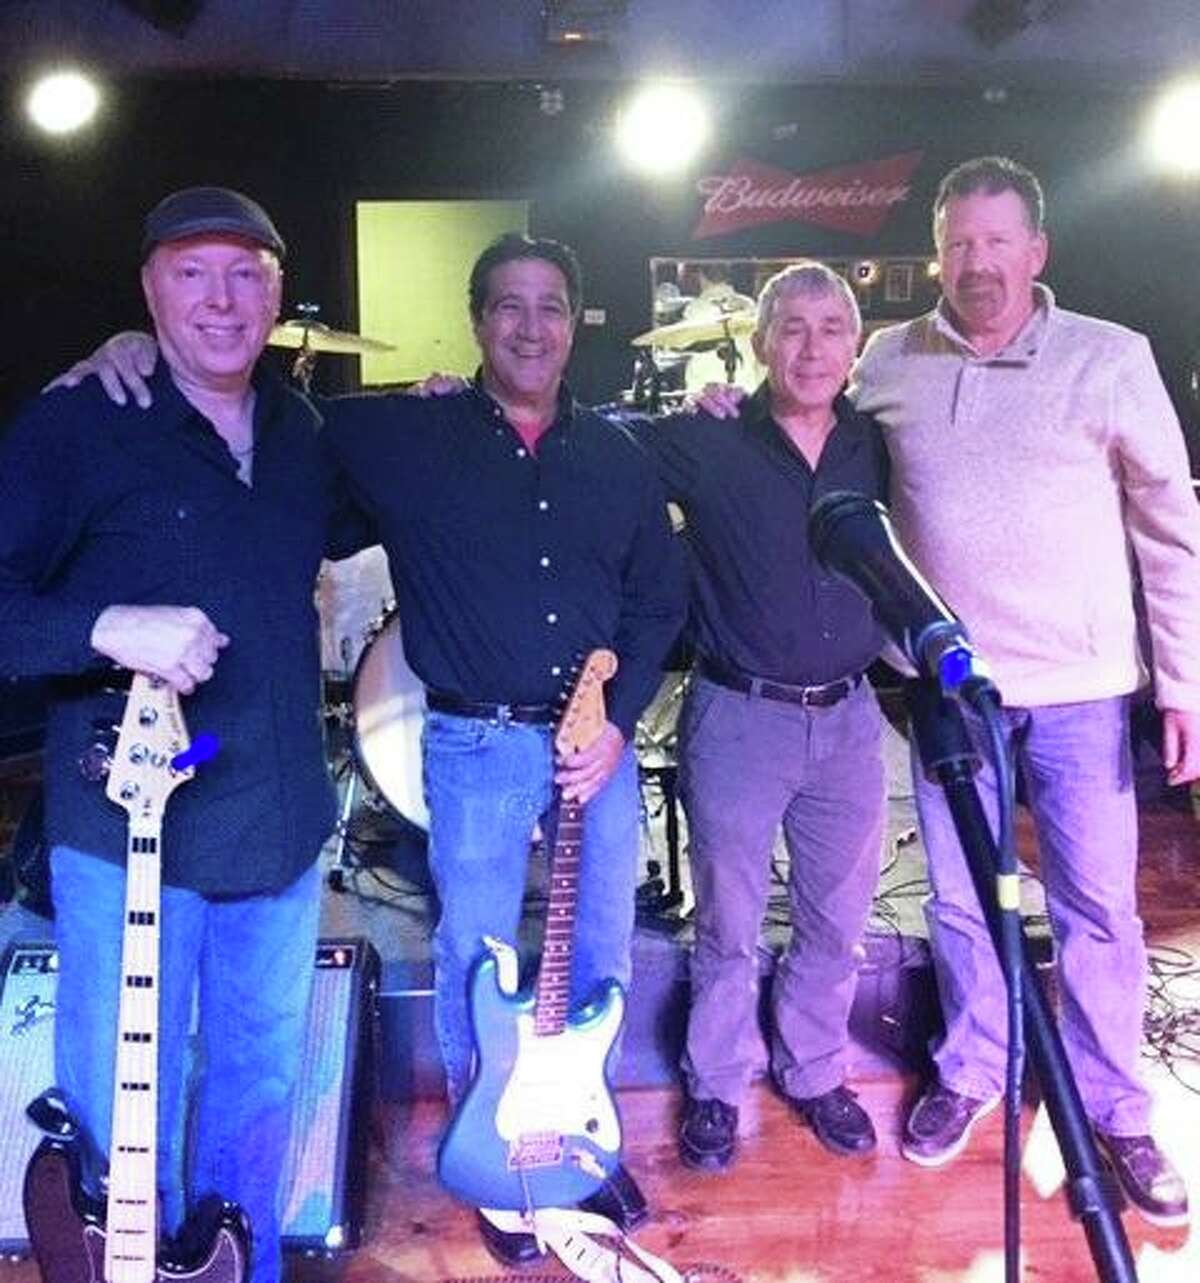 Frankie and the Know-it-Alls are playing Saturday on the patio at the Canoe Club at Harbor Park in MIddletown.